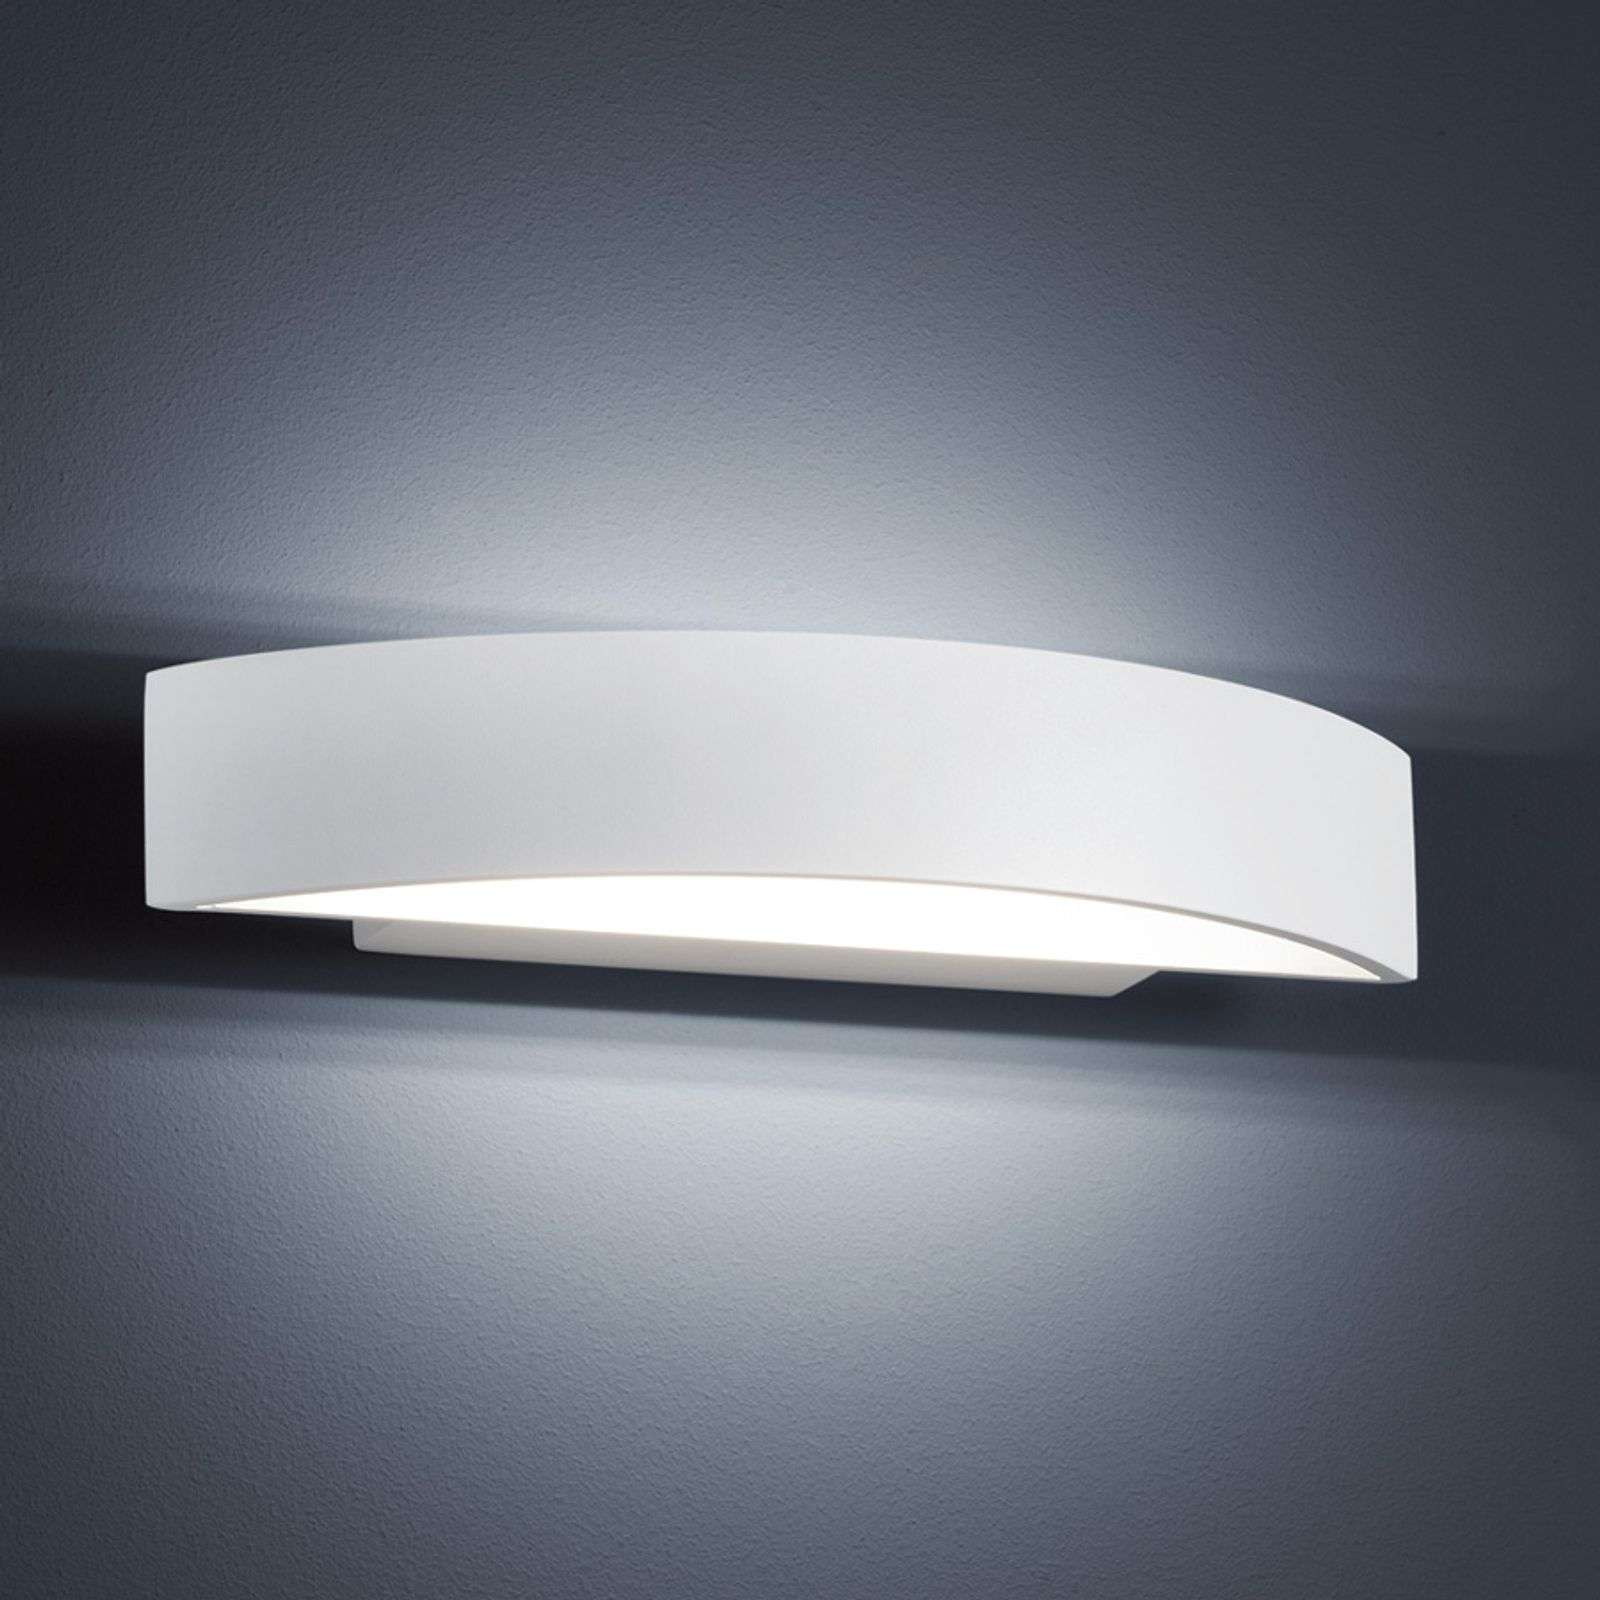 Lámpara LED de pared Yona en blanco mate, 27,5 cm